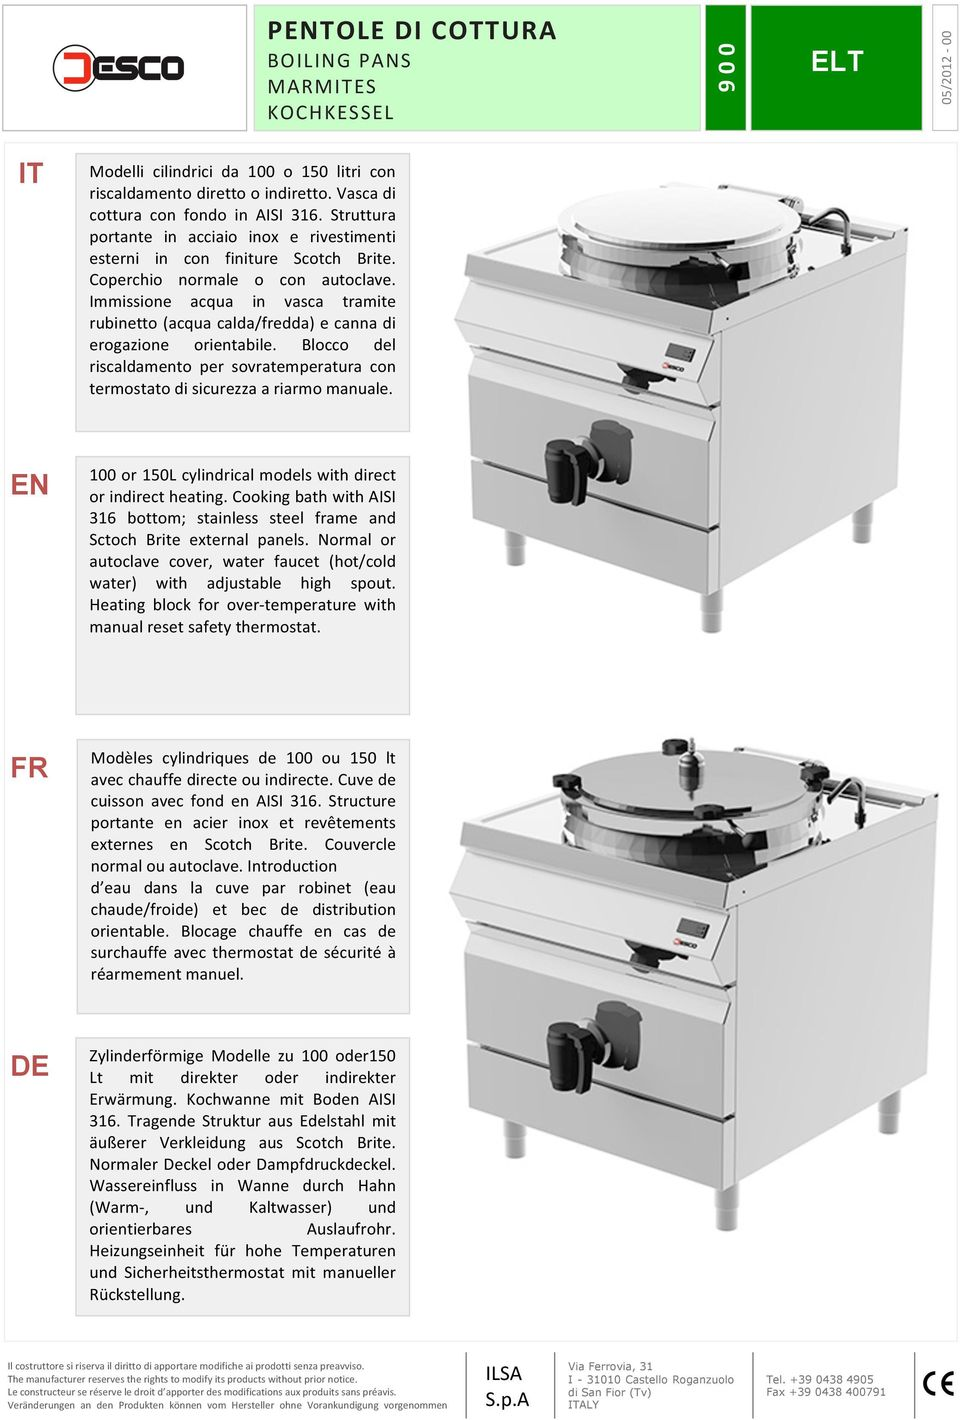 di sicurezza a riarmo manuale EN N 100 or 150L cylindrical models with direct or indirect heating Cooking bath with AISI 316 bottom; stainless steel frame and Sctoch Brite external panels Normal or